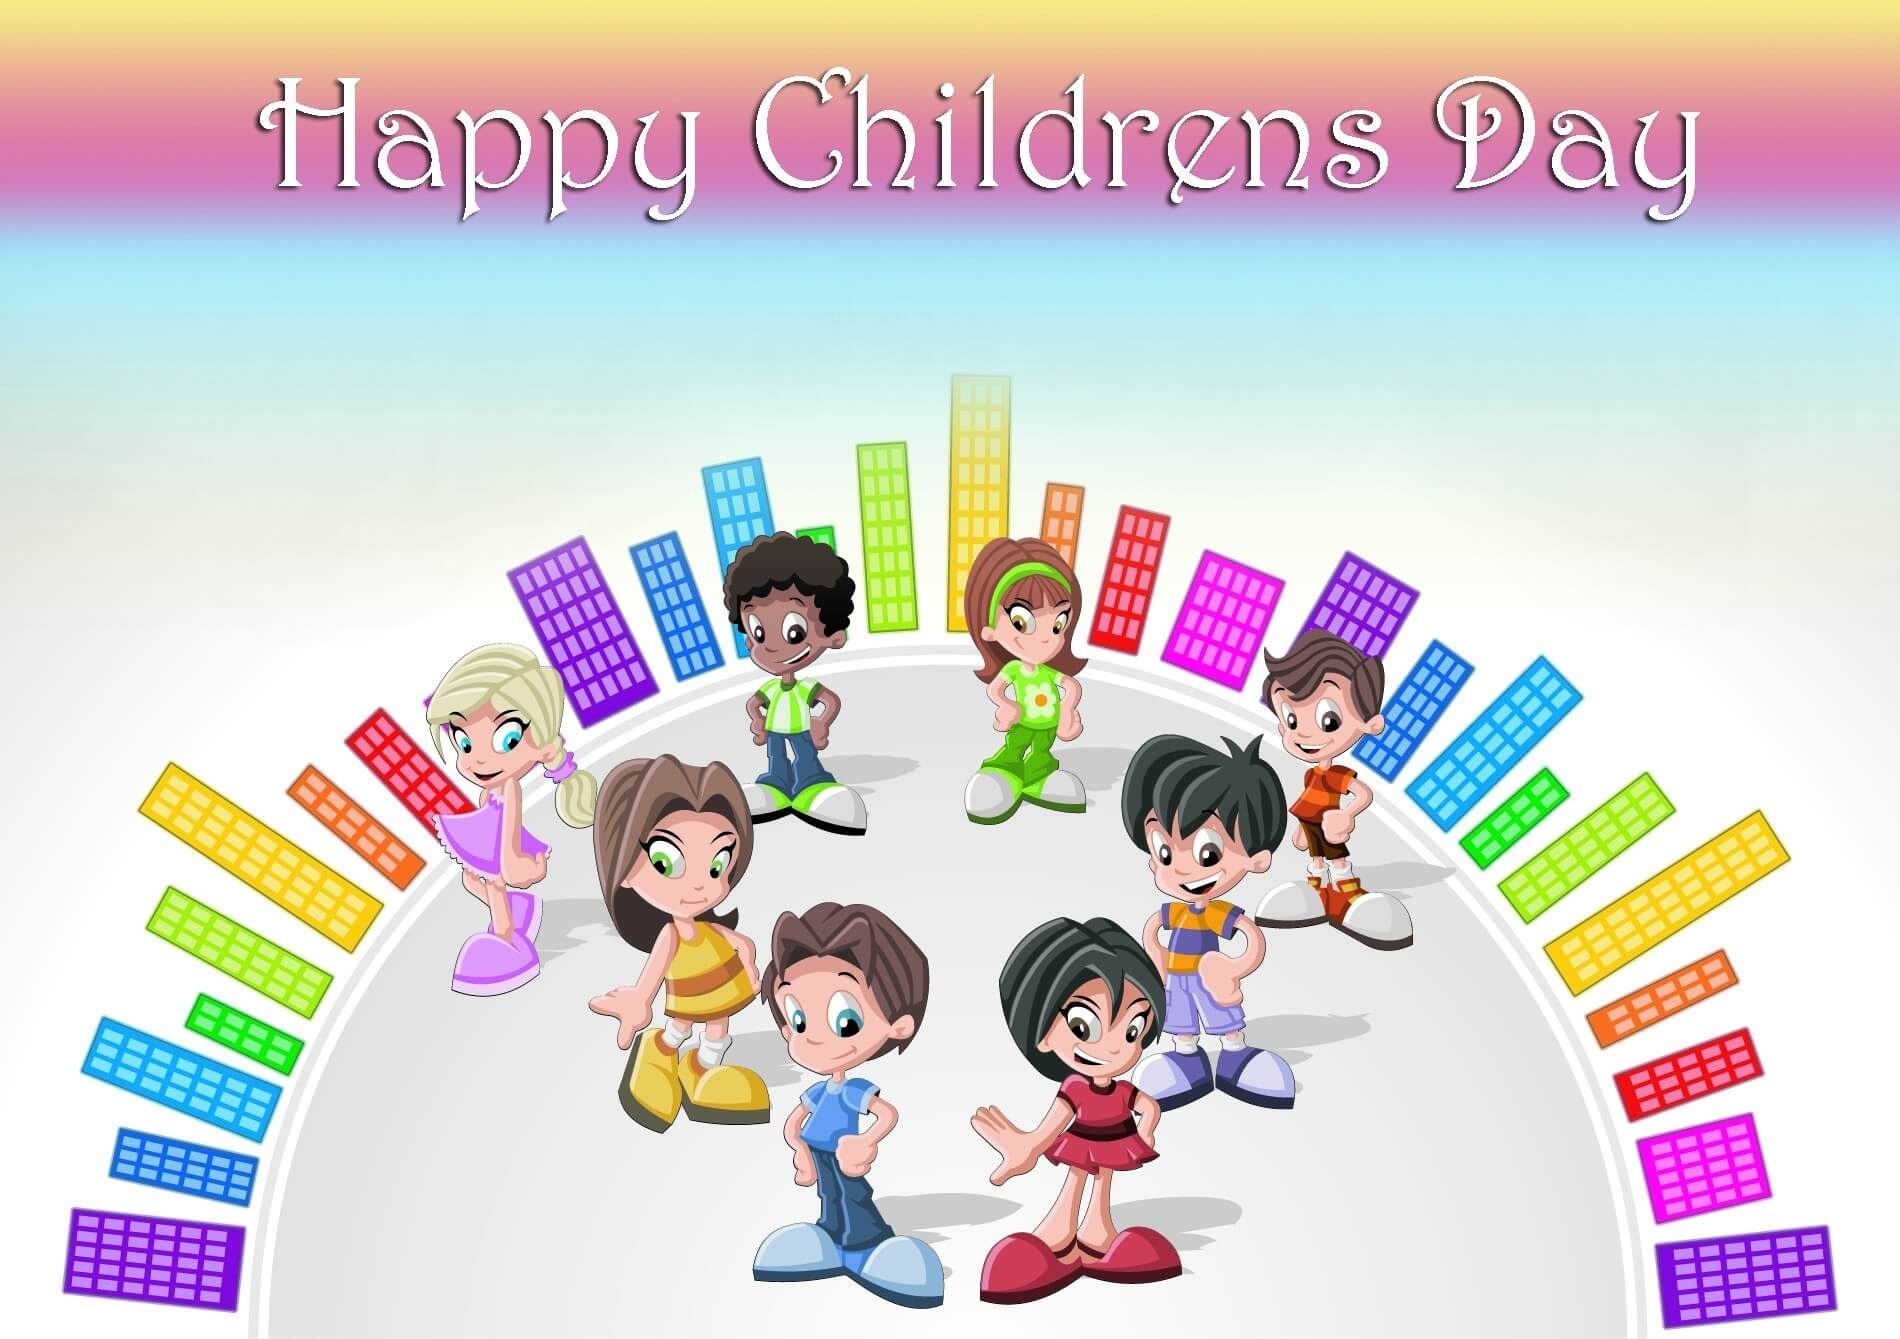 happy childrens day animated cartoon kids wallpaper